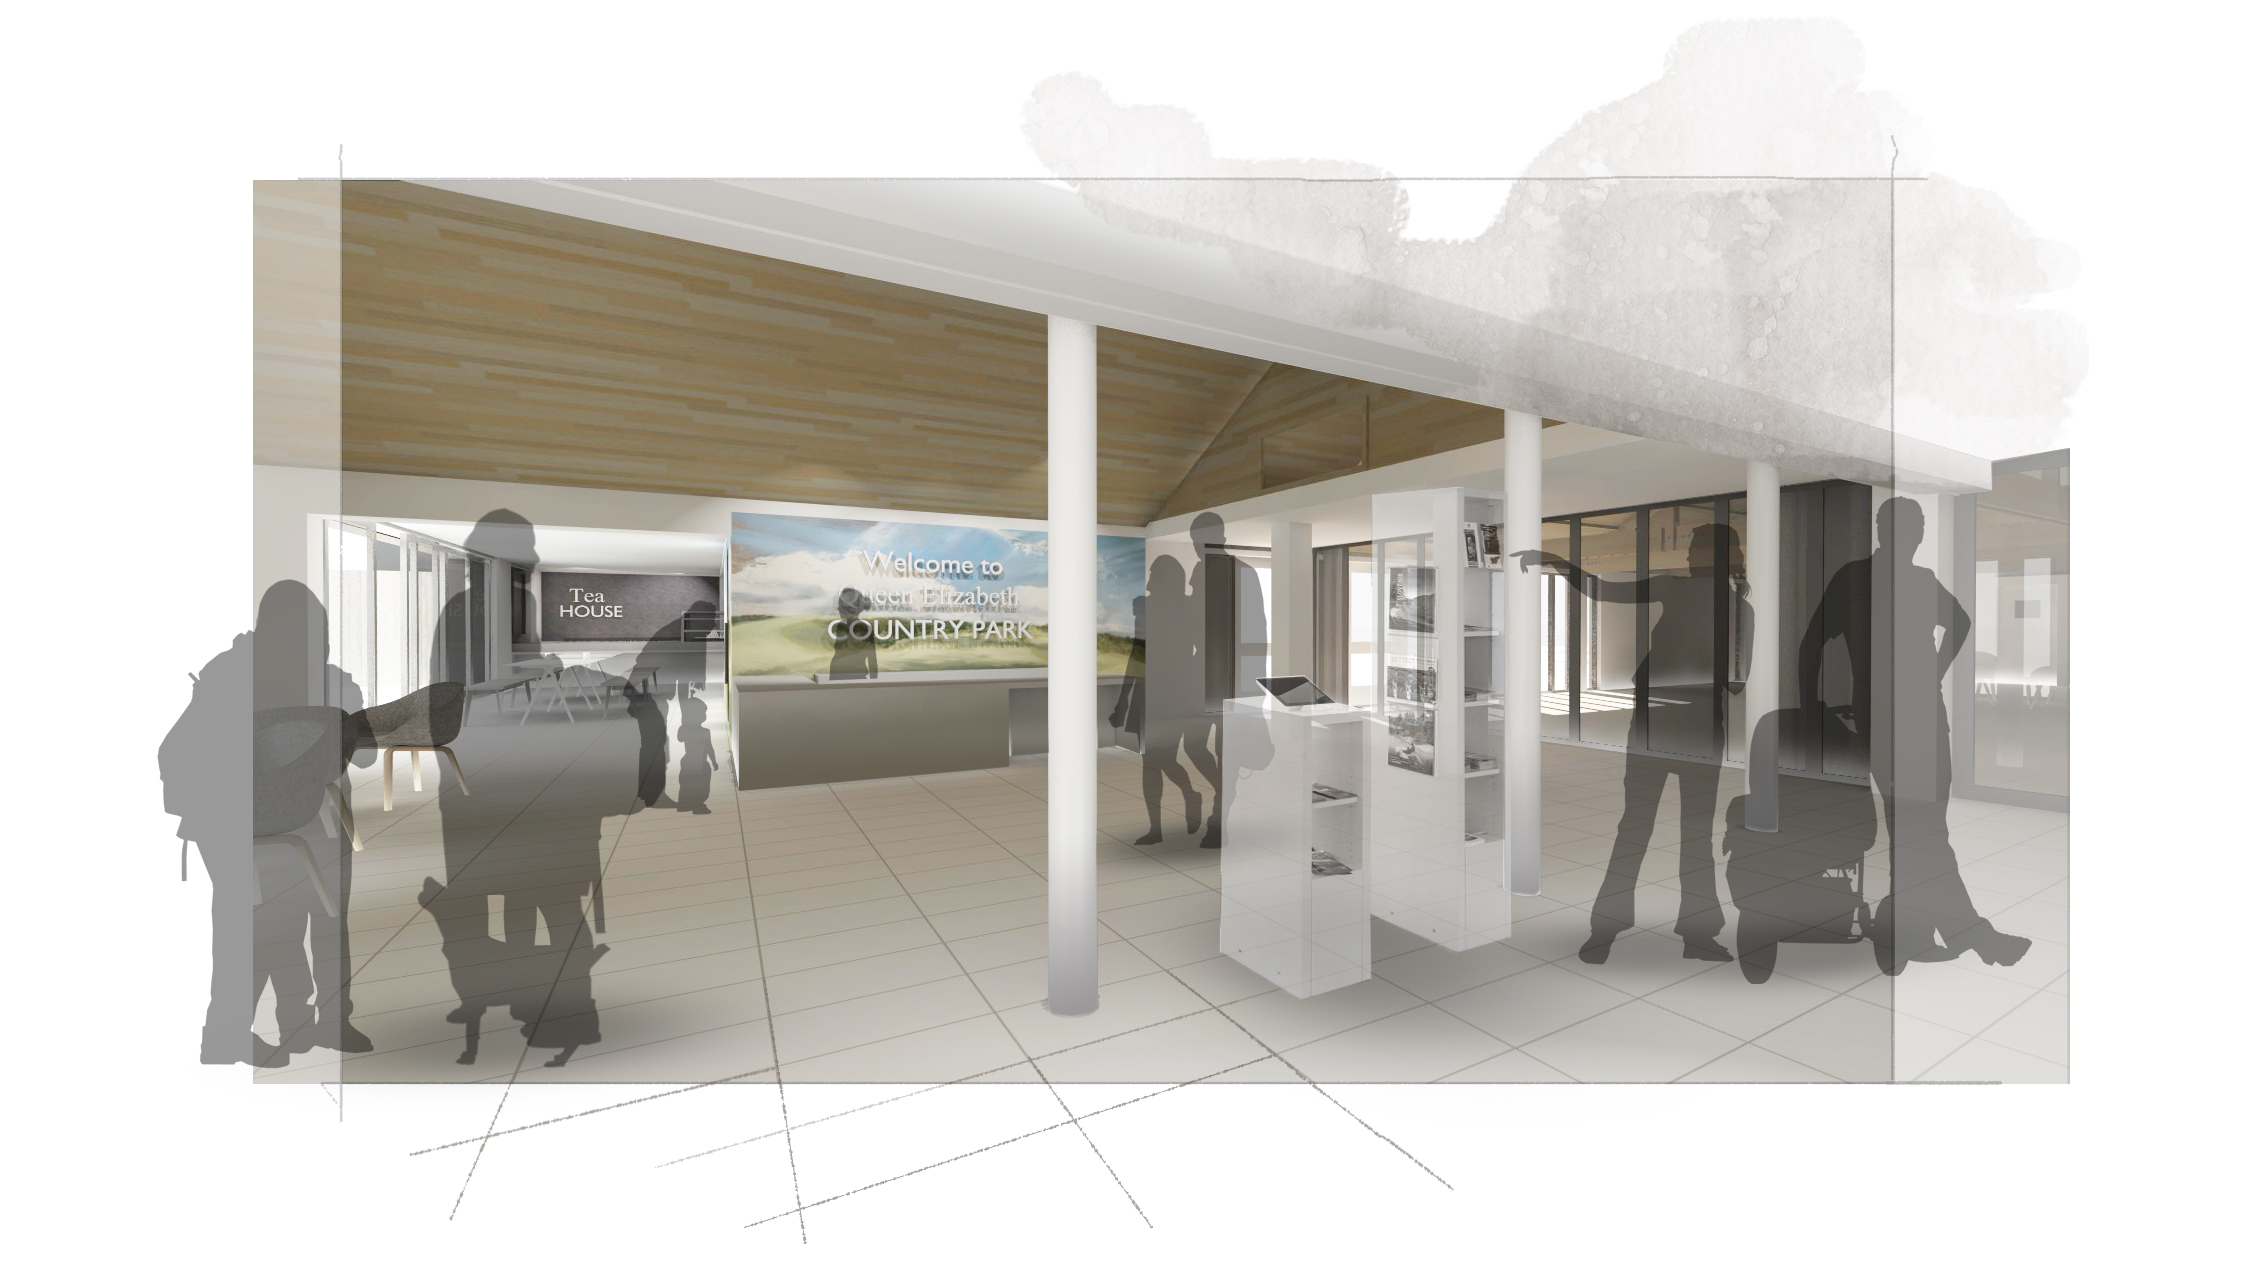 Design for Queen Elizabeth Country Park's new visitor centre